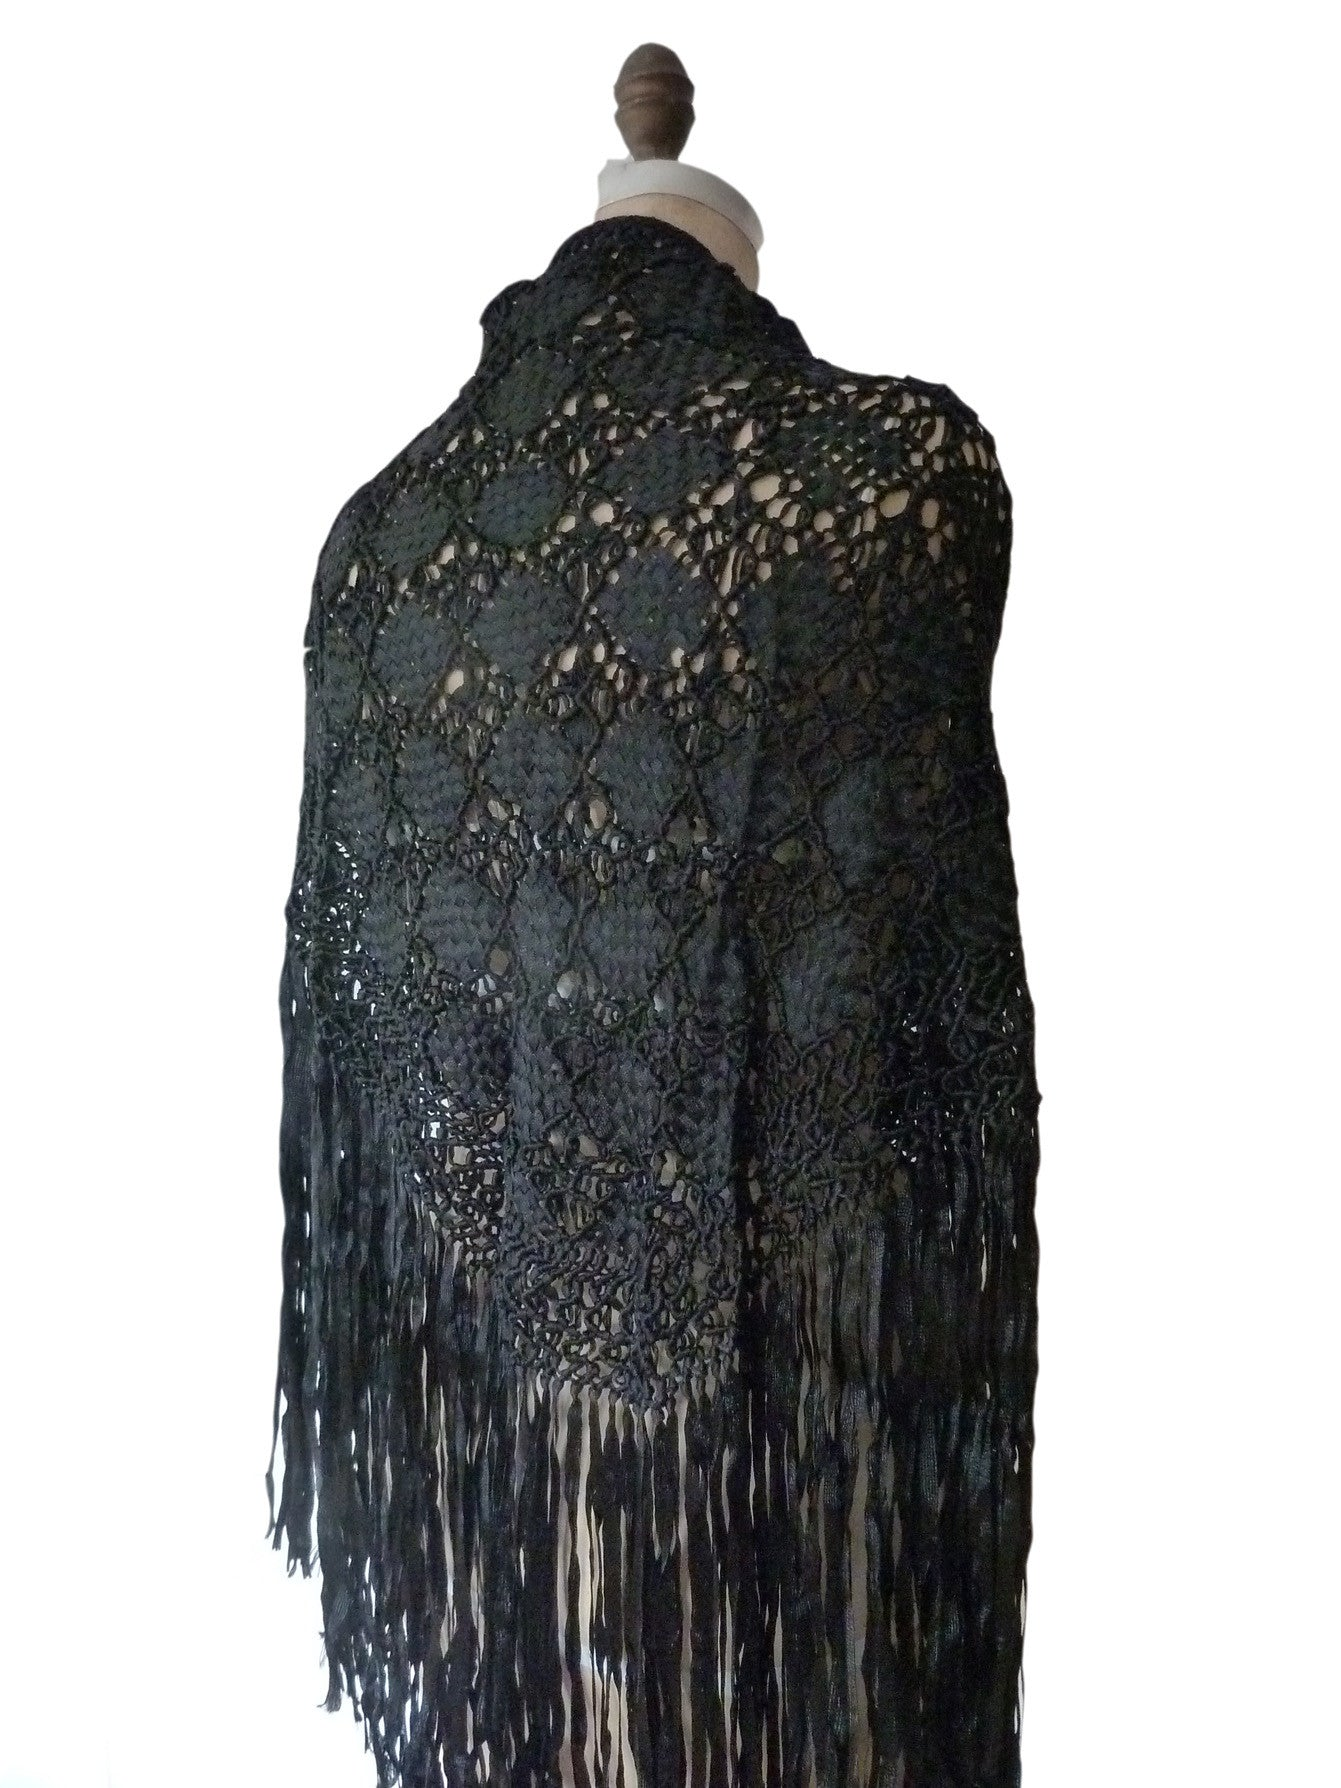 SILK MACRAME TRIANGLE SHAWL